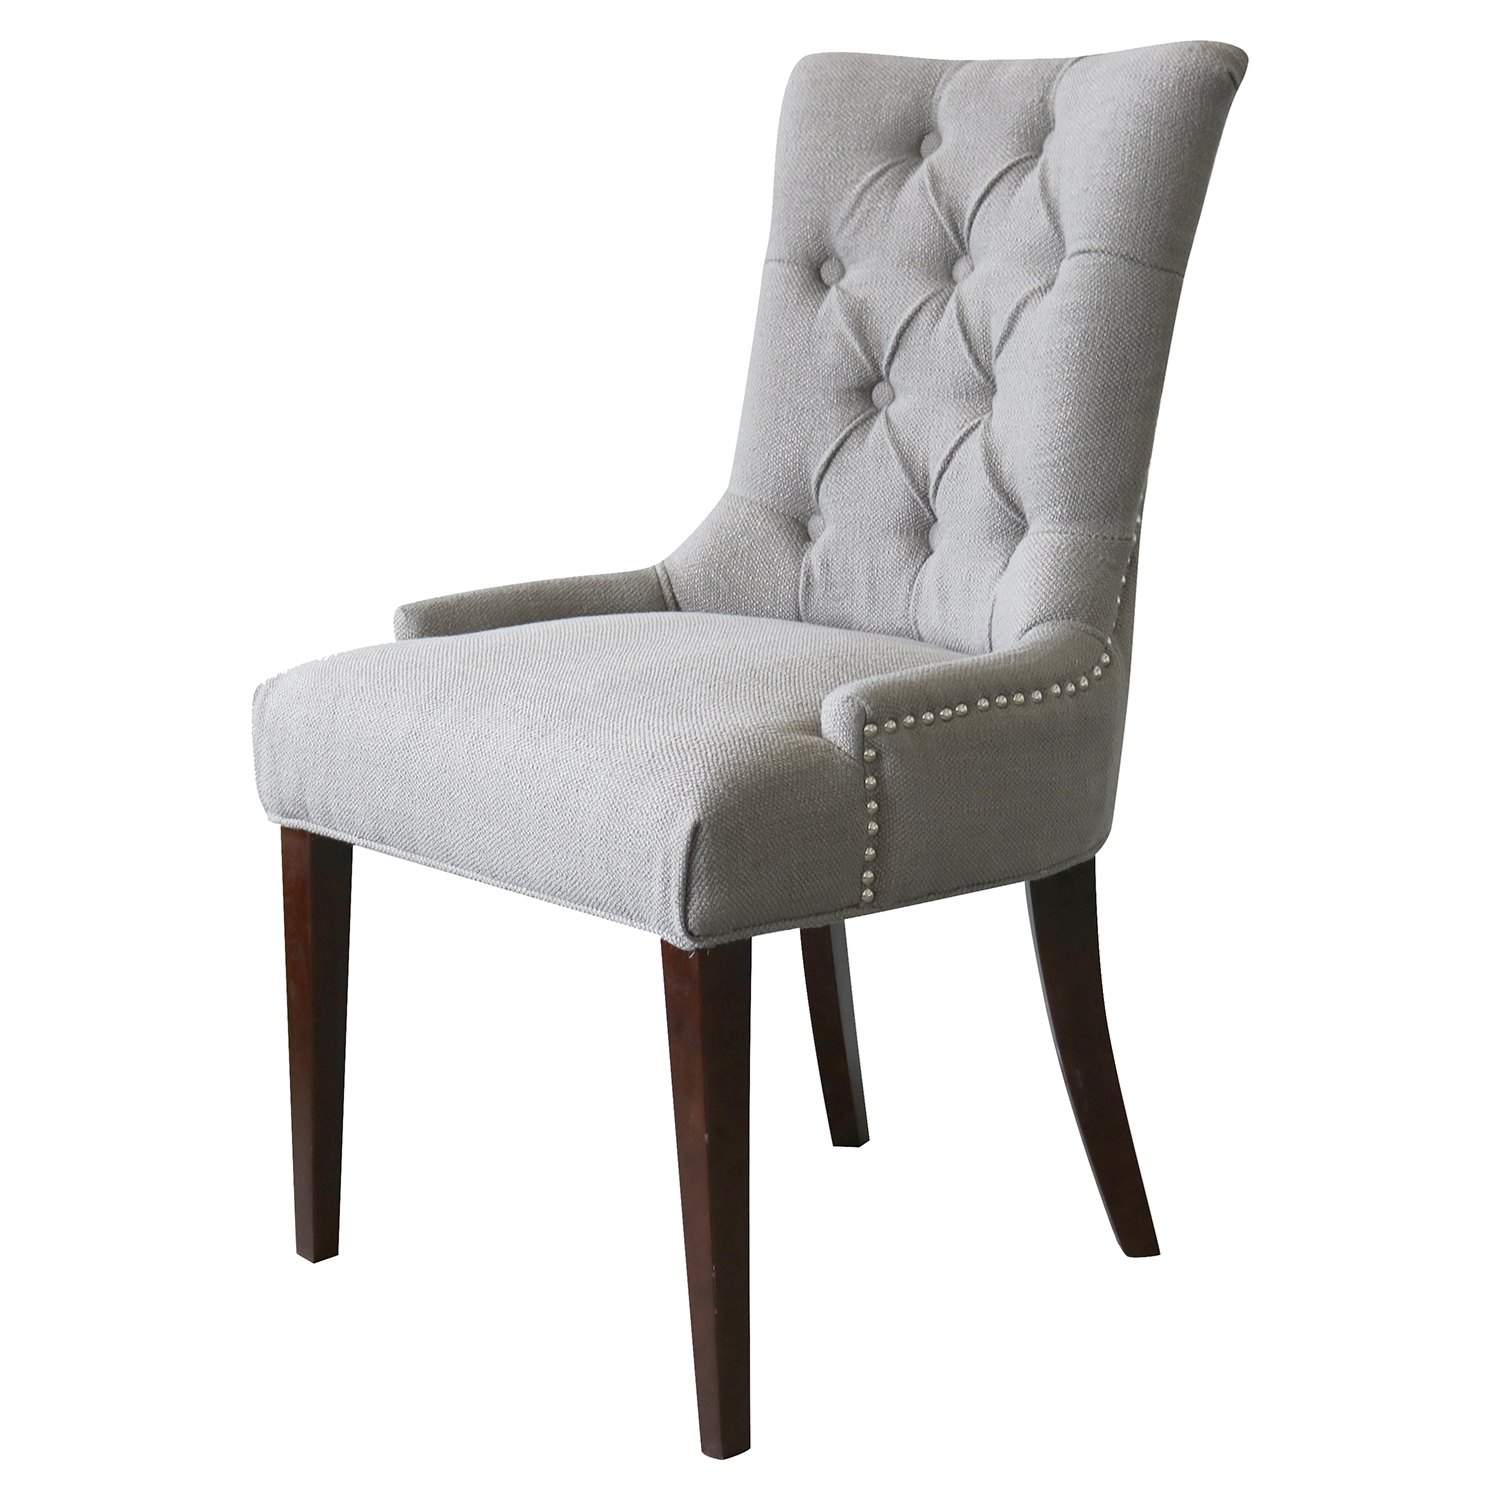 Madelyn Chair - Granite, Button Tufted - CP-200-05